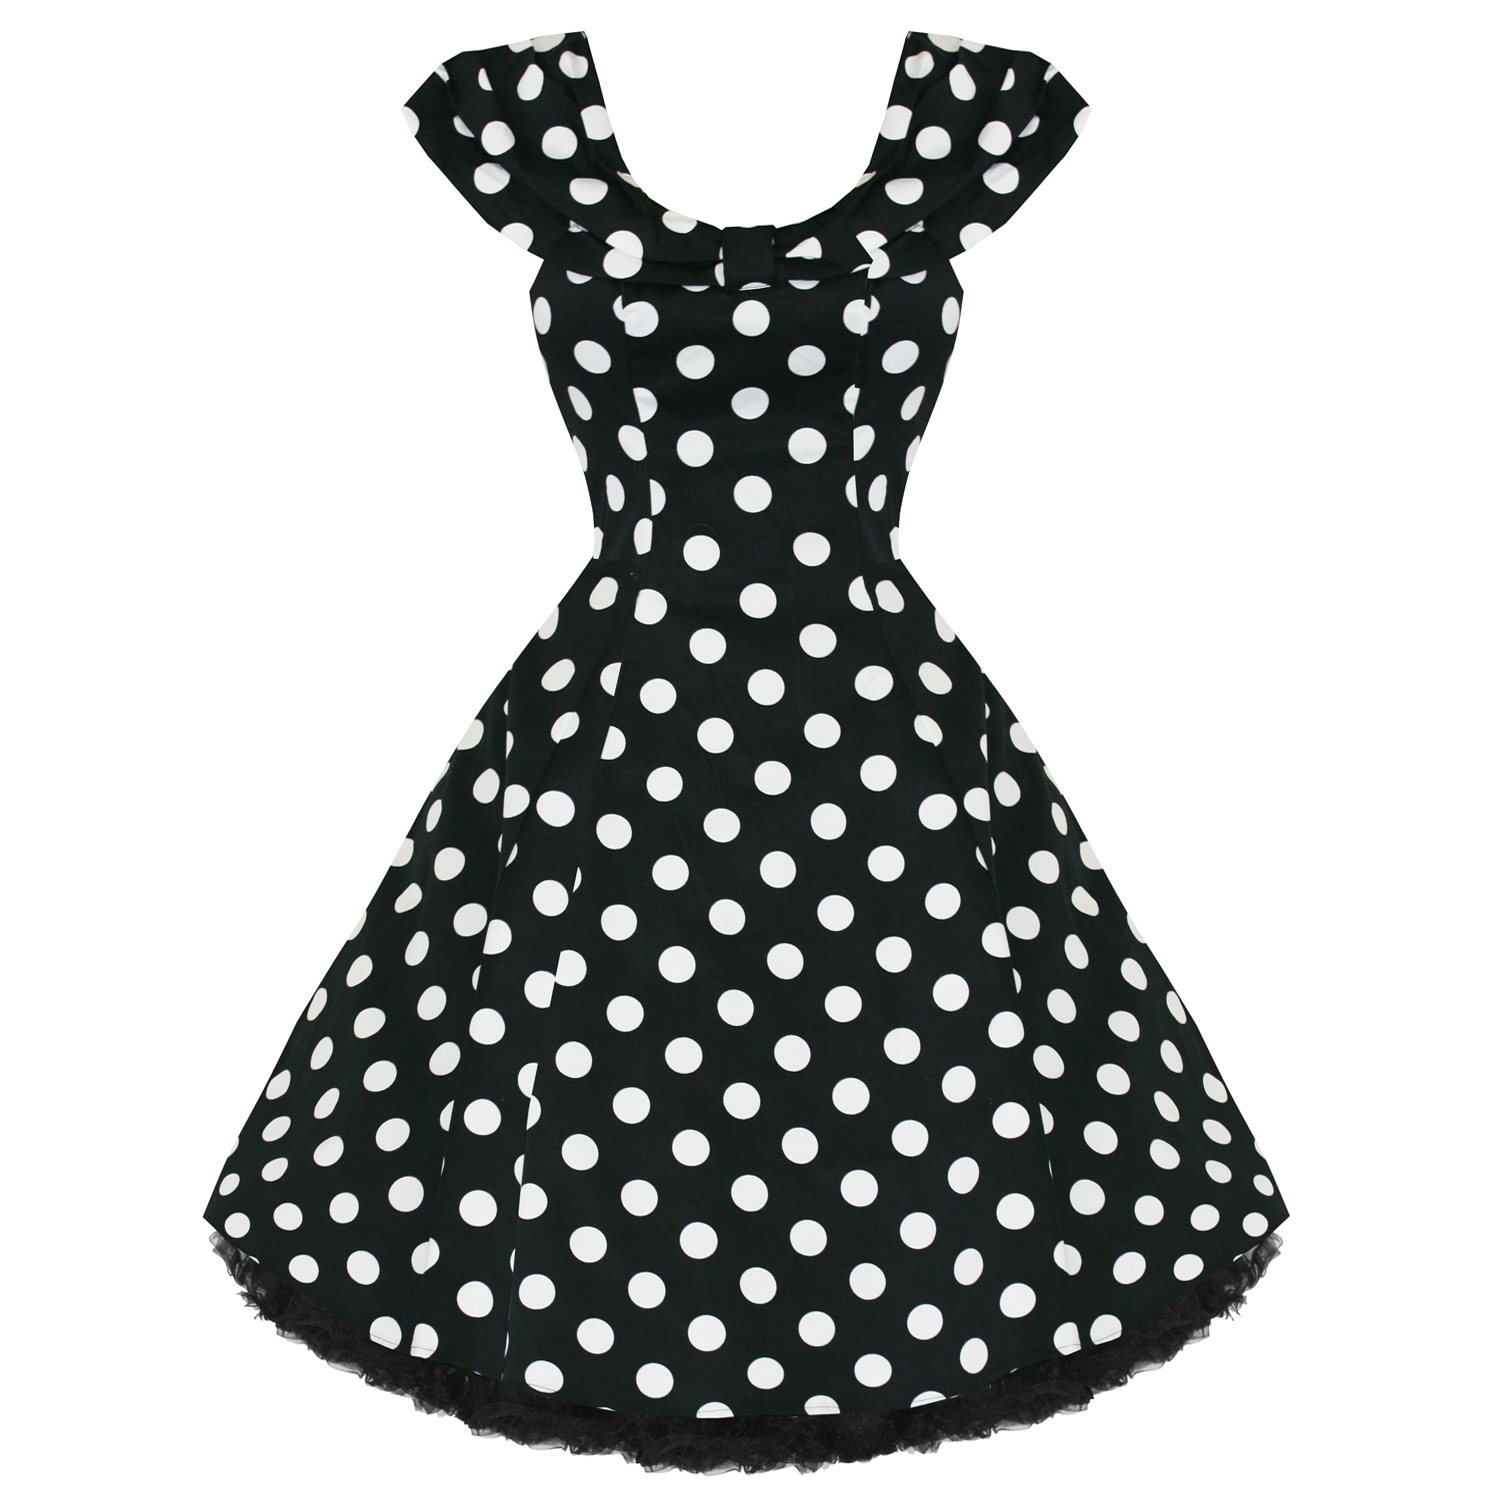 WOMENS LADIES NEW VINTAGE 1950S VTG BLACK POLKA DOT PARTY